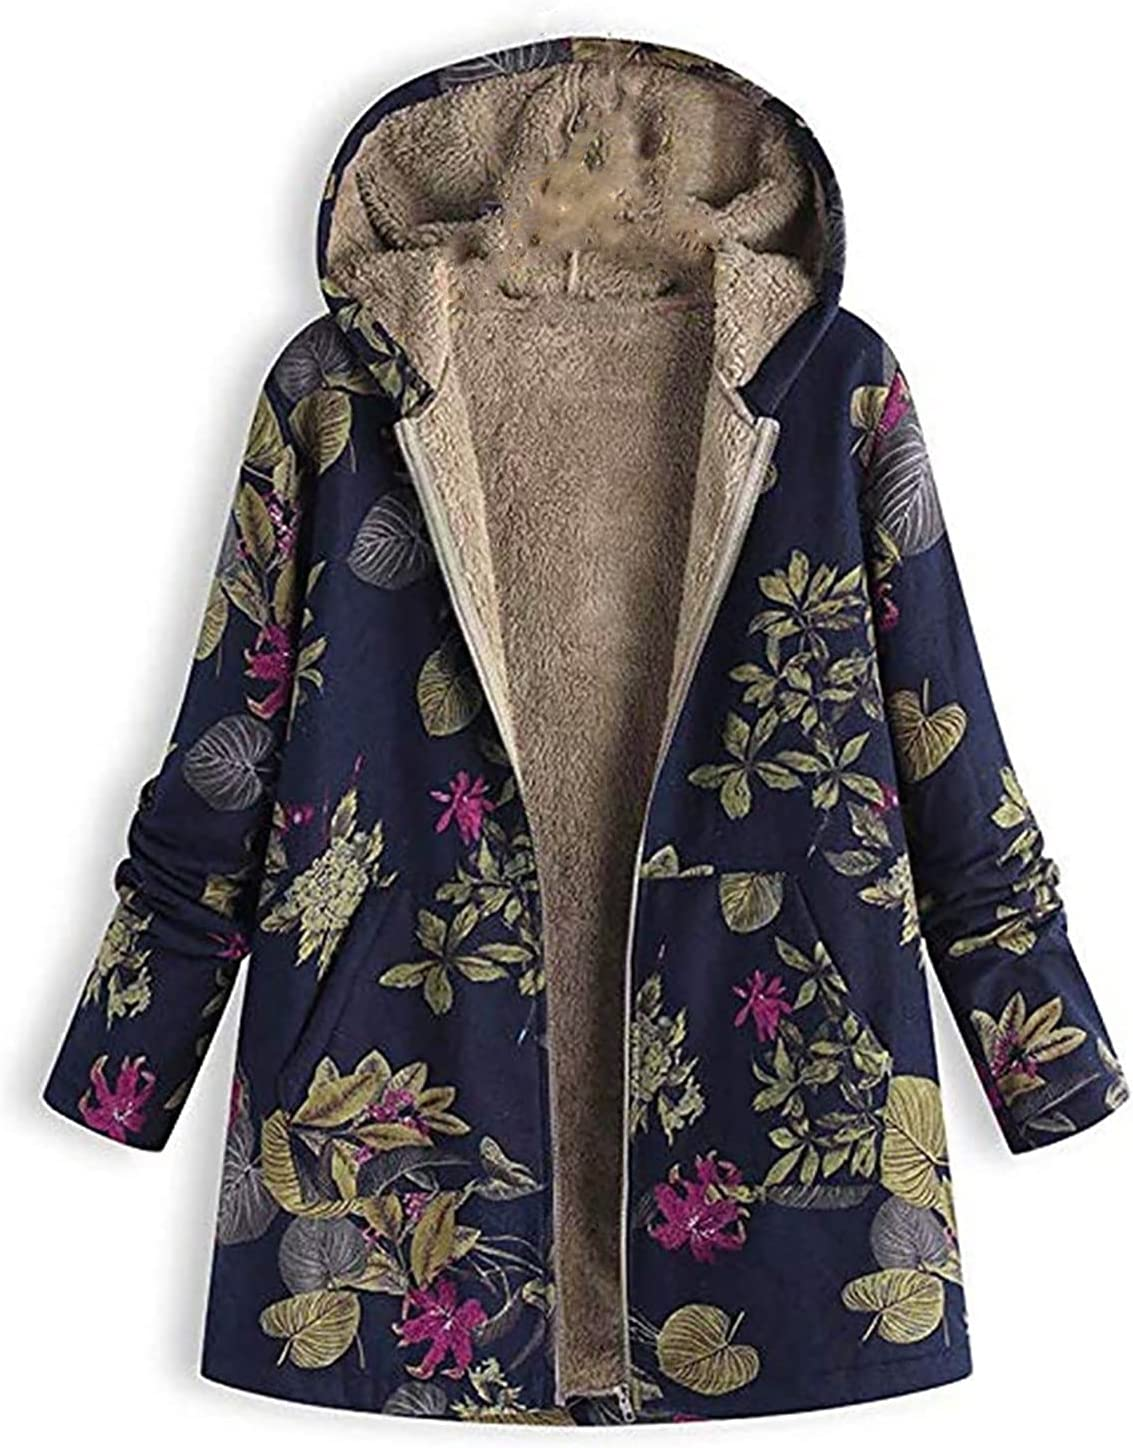 New Max 46% OFF popularity Womens Winter Fleece Jacket Floral Print Long Faux S Vintage Fur